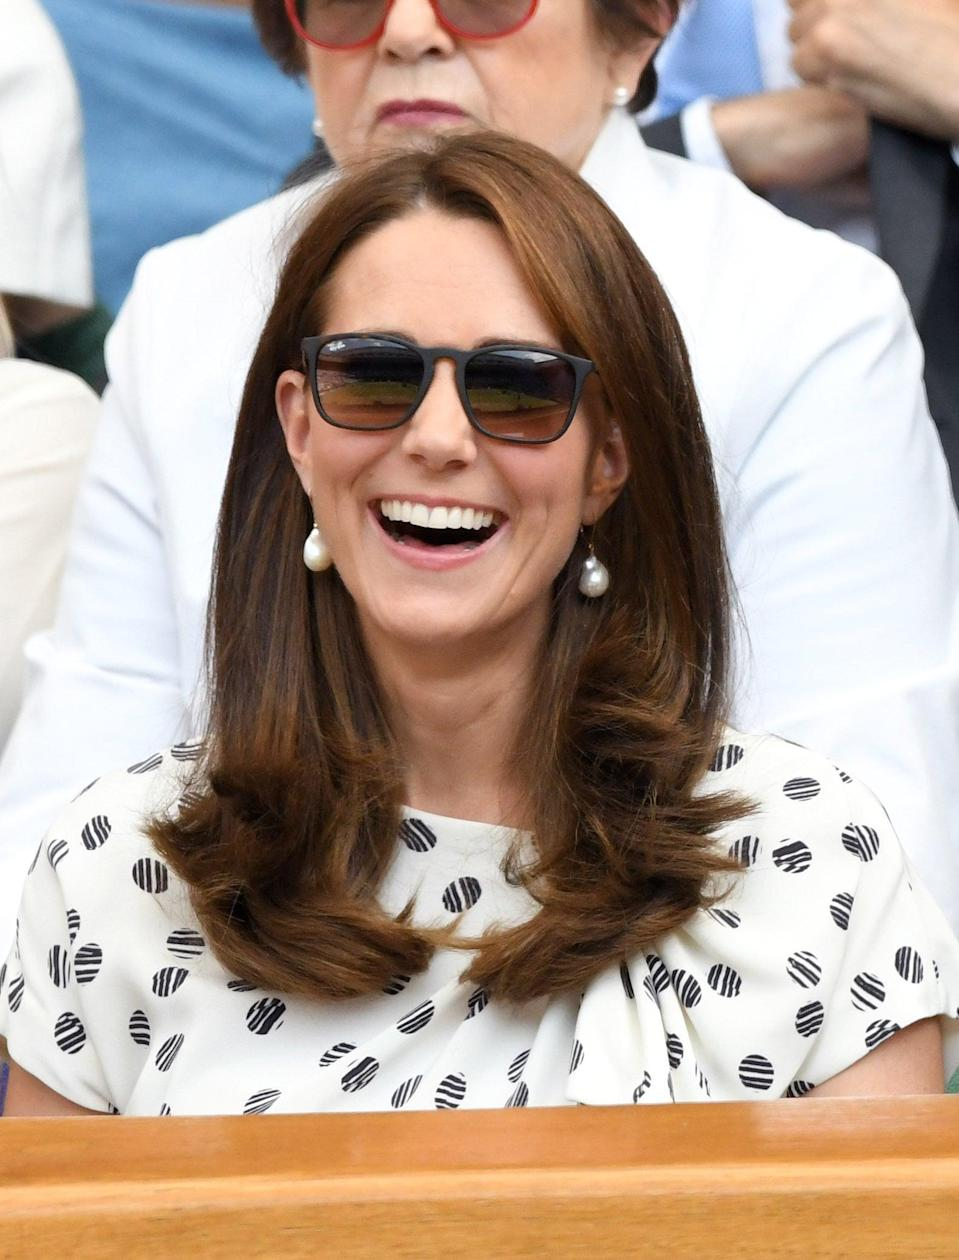 <p>To show off her defined layers in all their glory, Middleton wore her hair straighter than usual for a day at the tennis.</p>